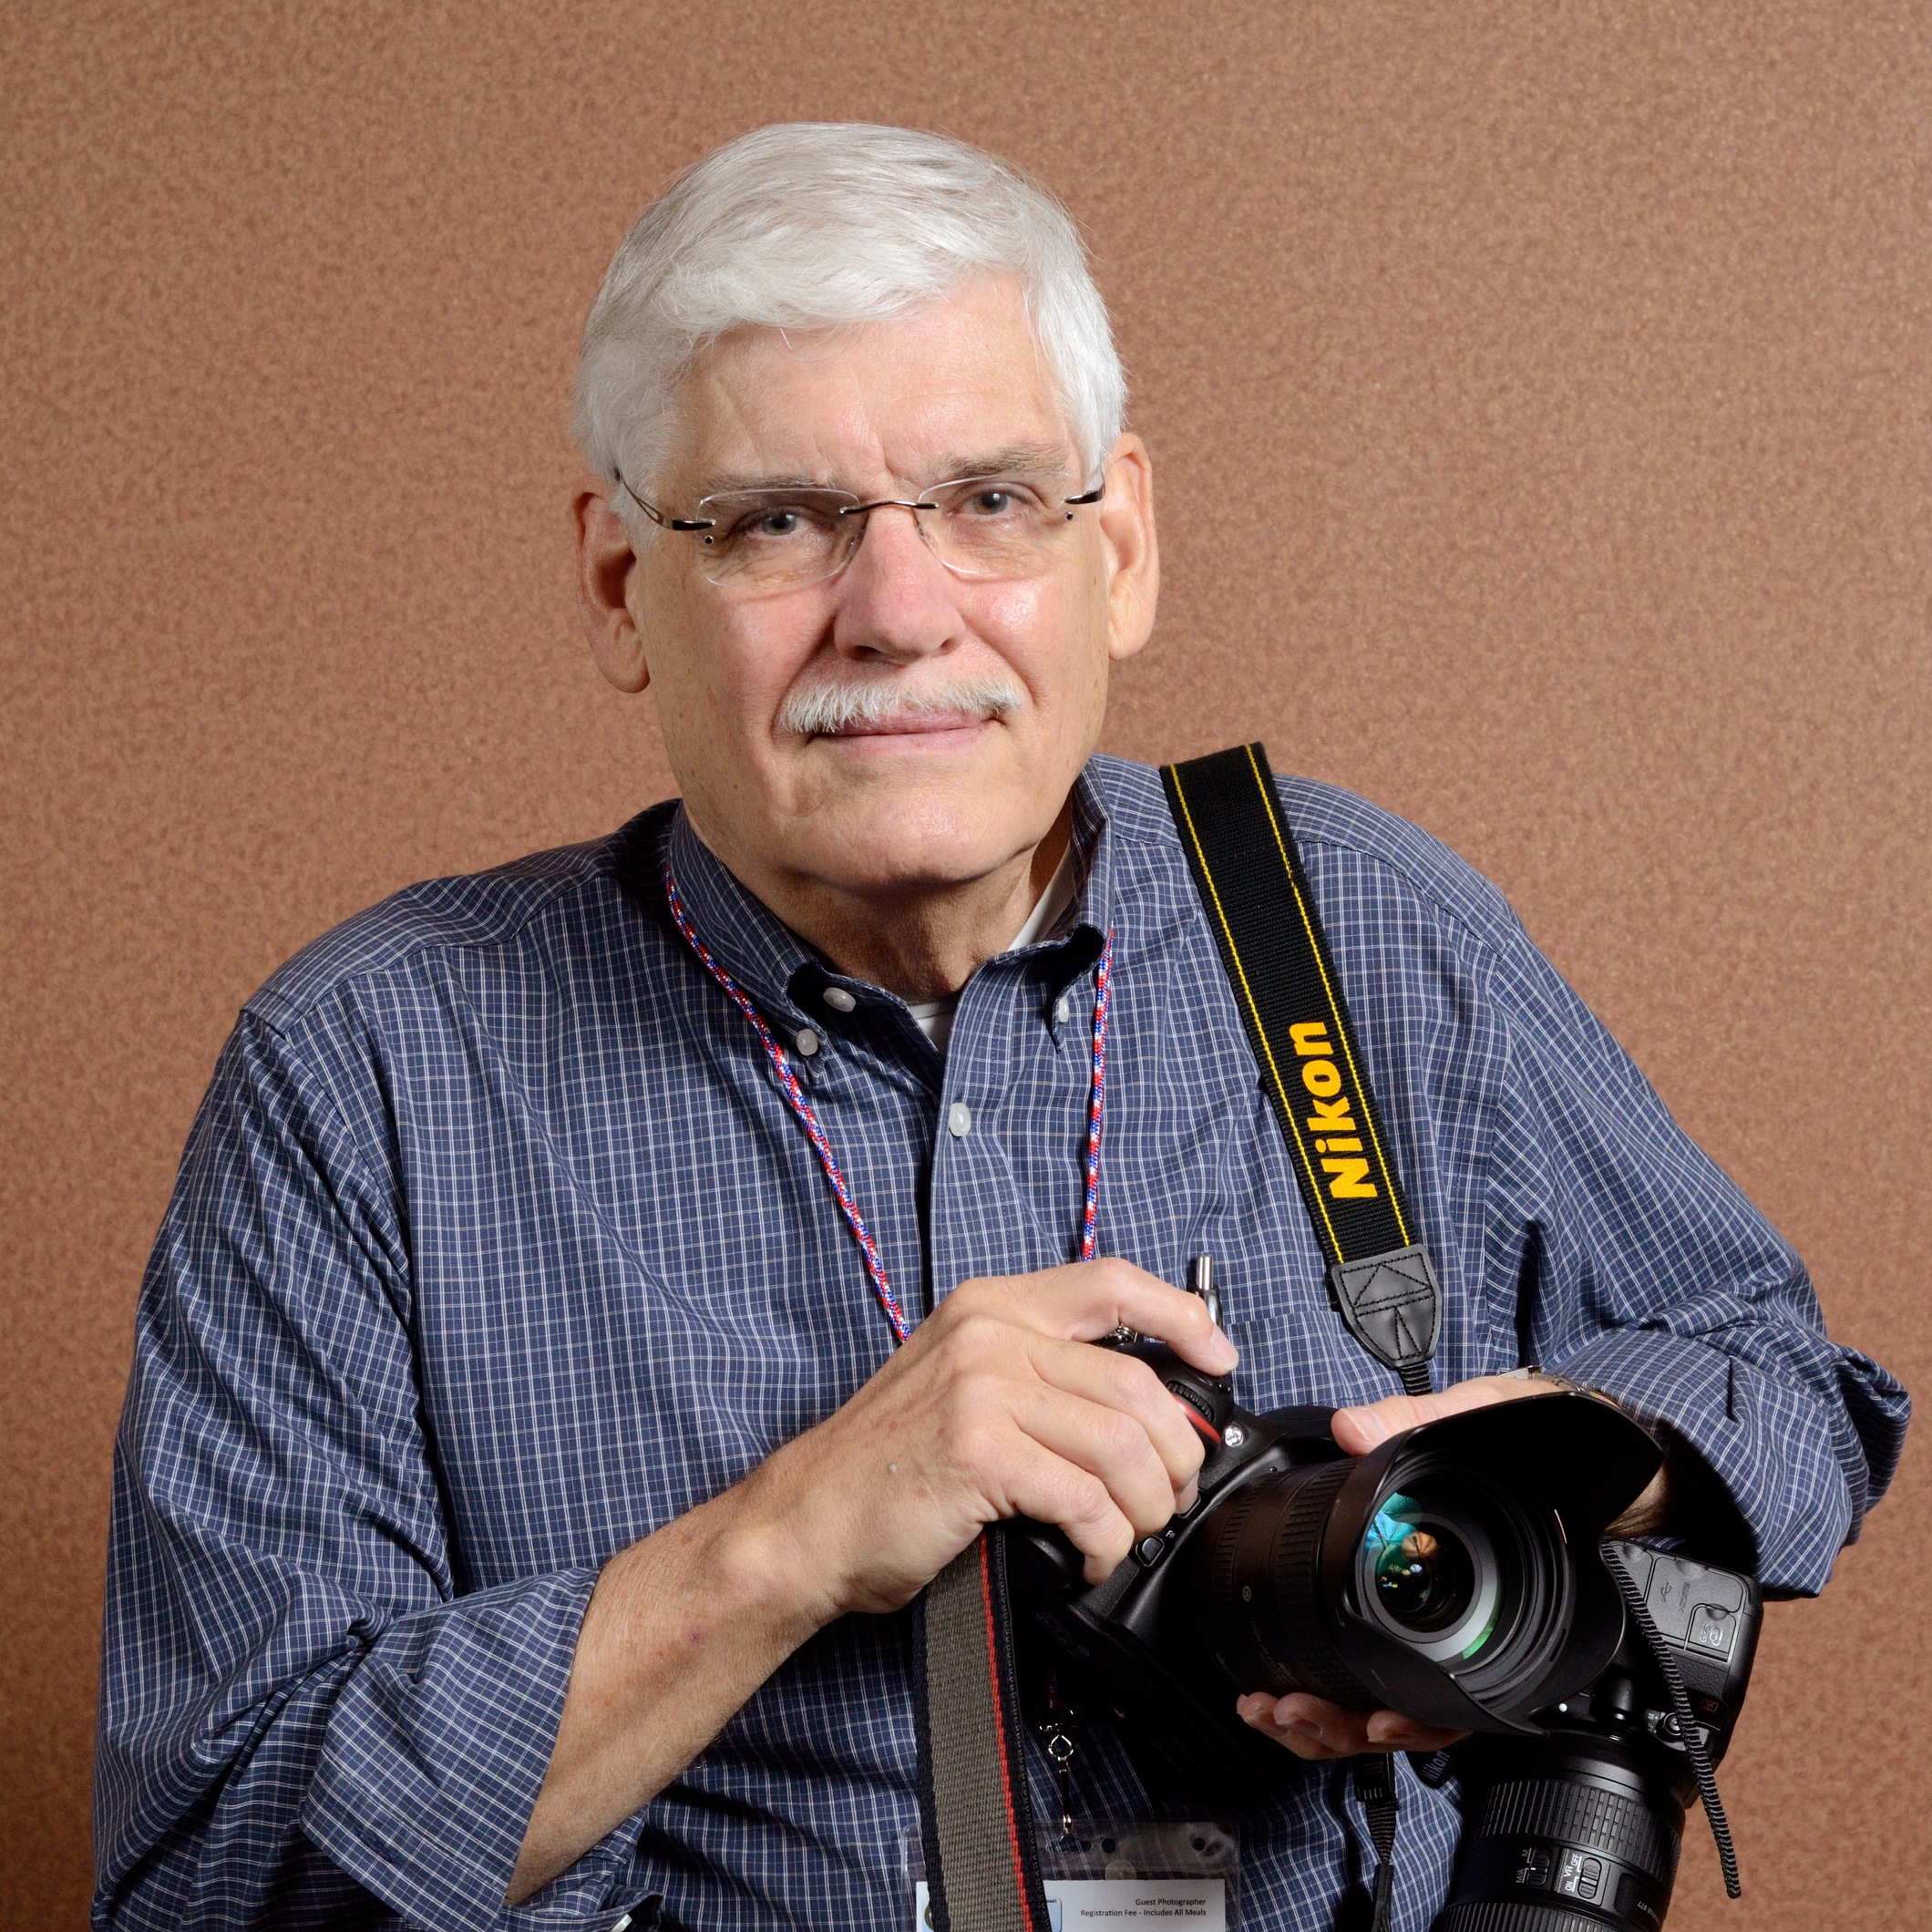 Fellow Photog. at the Diocese Convention Gary Zumwalt. I wanted to get a picture of Gary with his cameras.